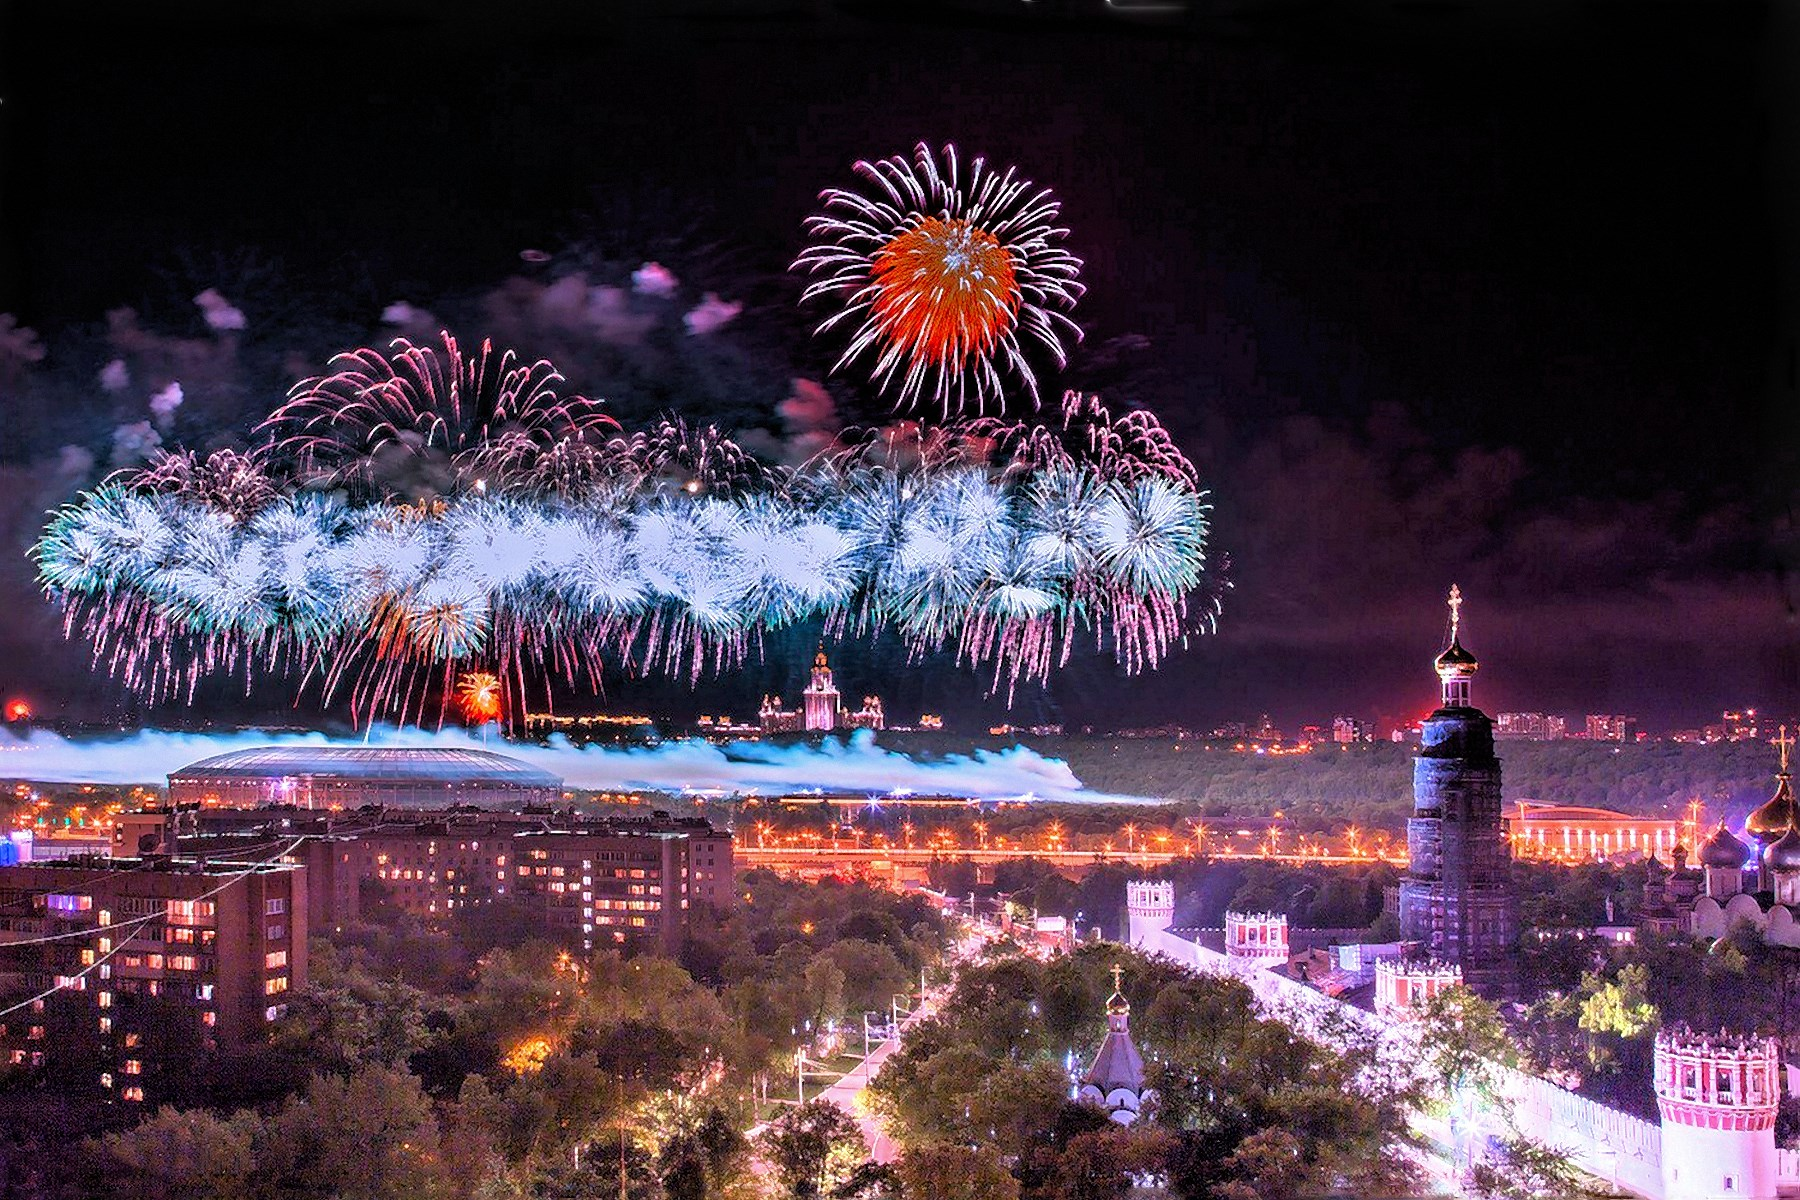 00 Konstantin Lamin. Fireworks in Honour of Victory Day in Moscow. 2016